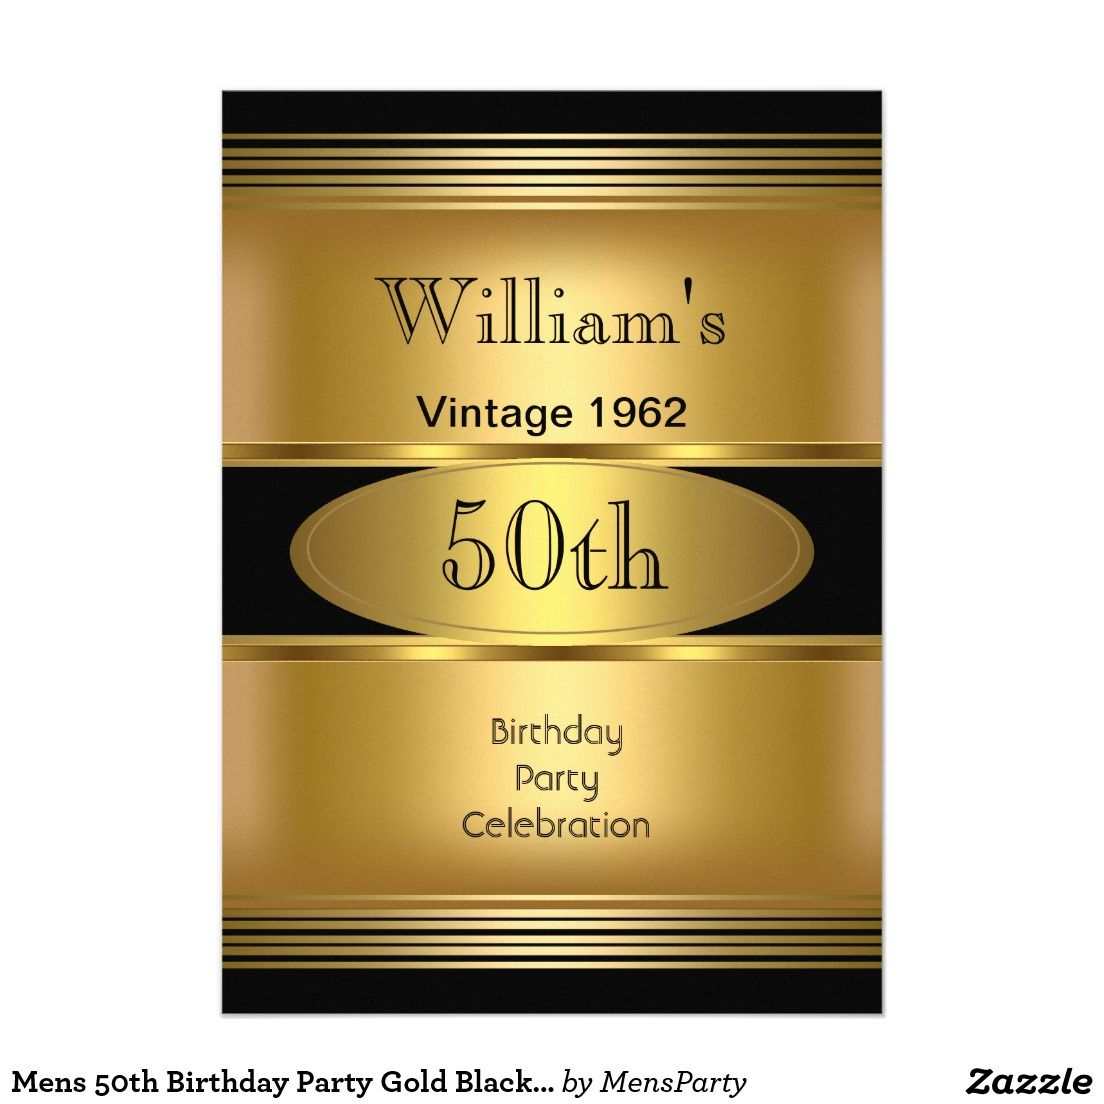 Mens 50th Birthday Party Gold Black Vintage Card | 50 birthday ...